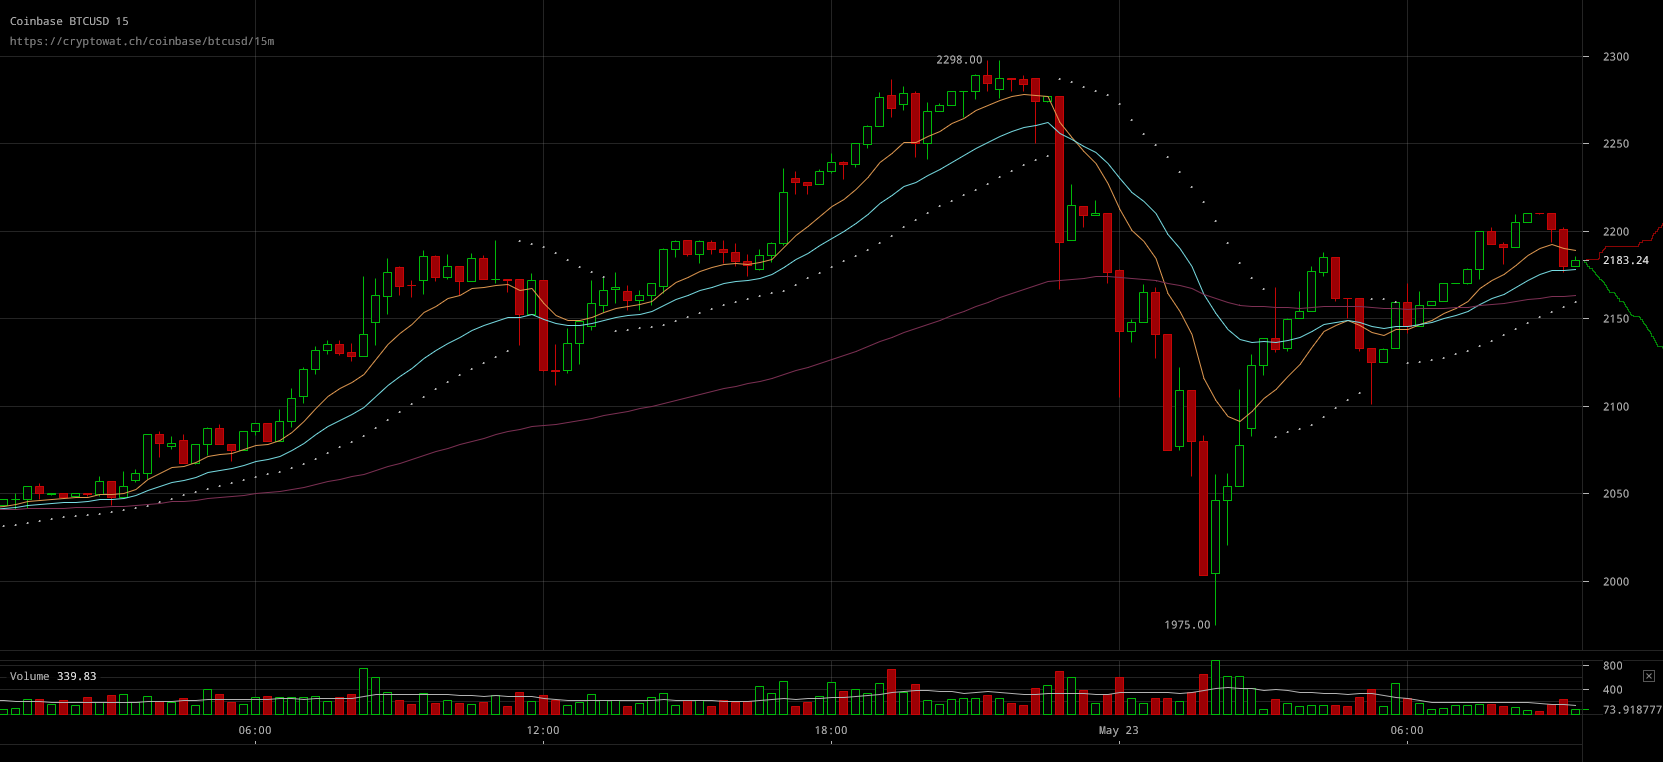 Bitcoin Price Recovering from Fall After Peak Nearing ...